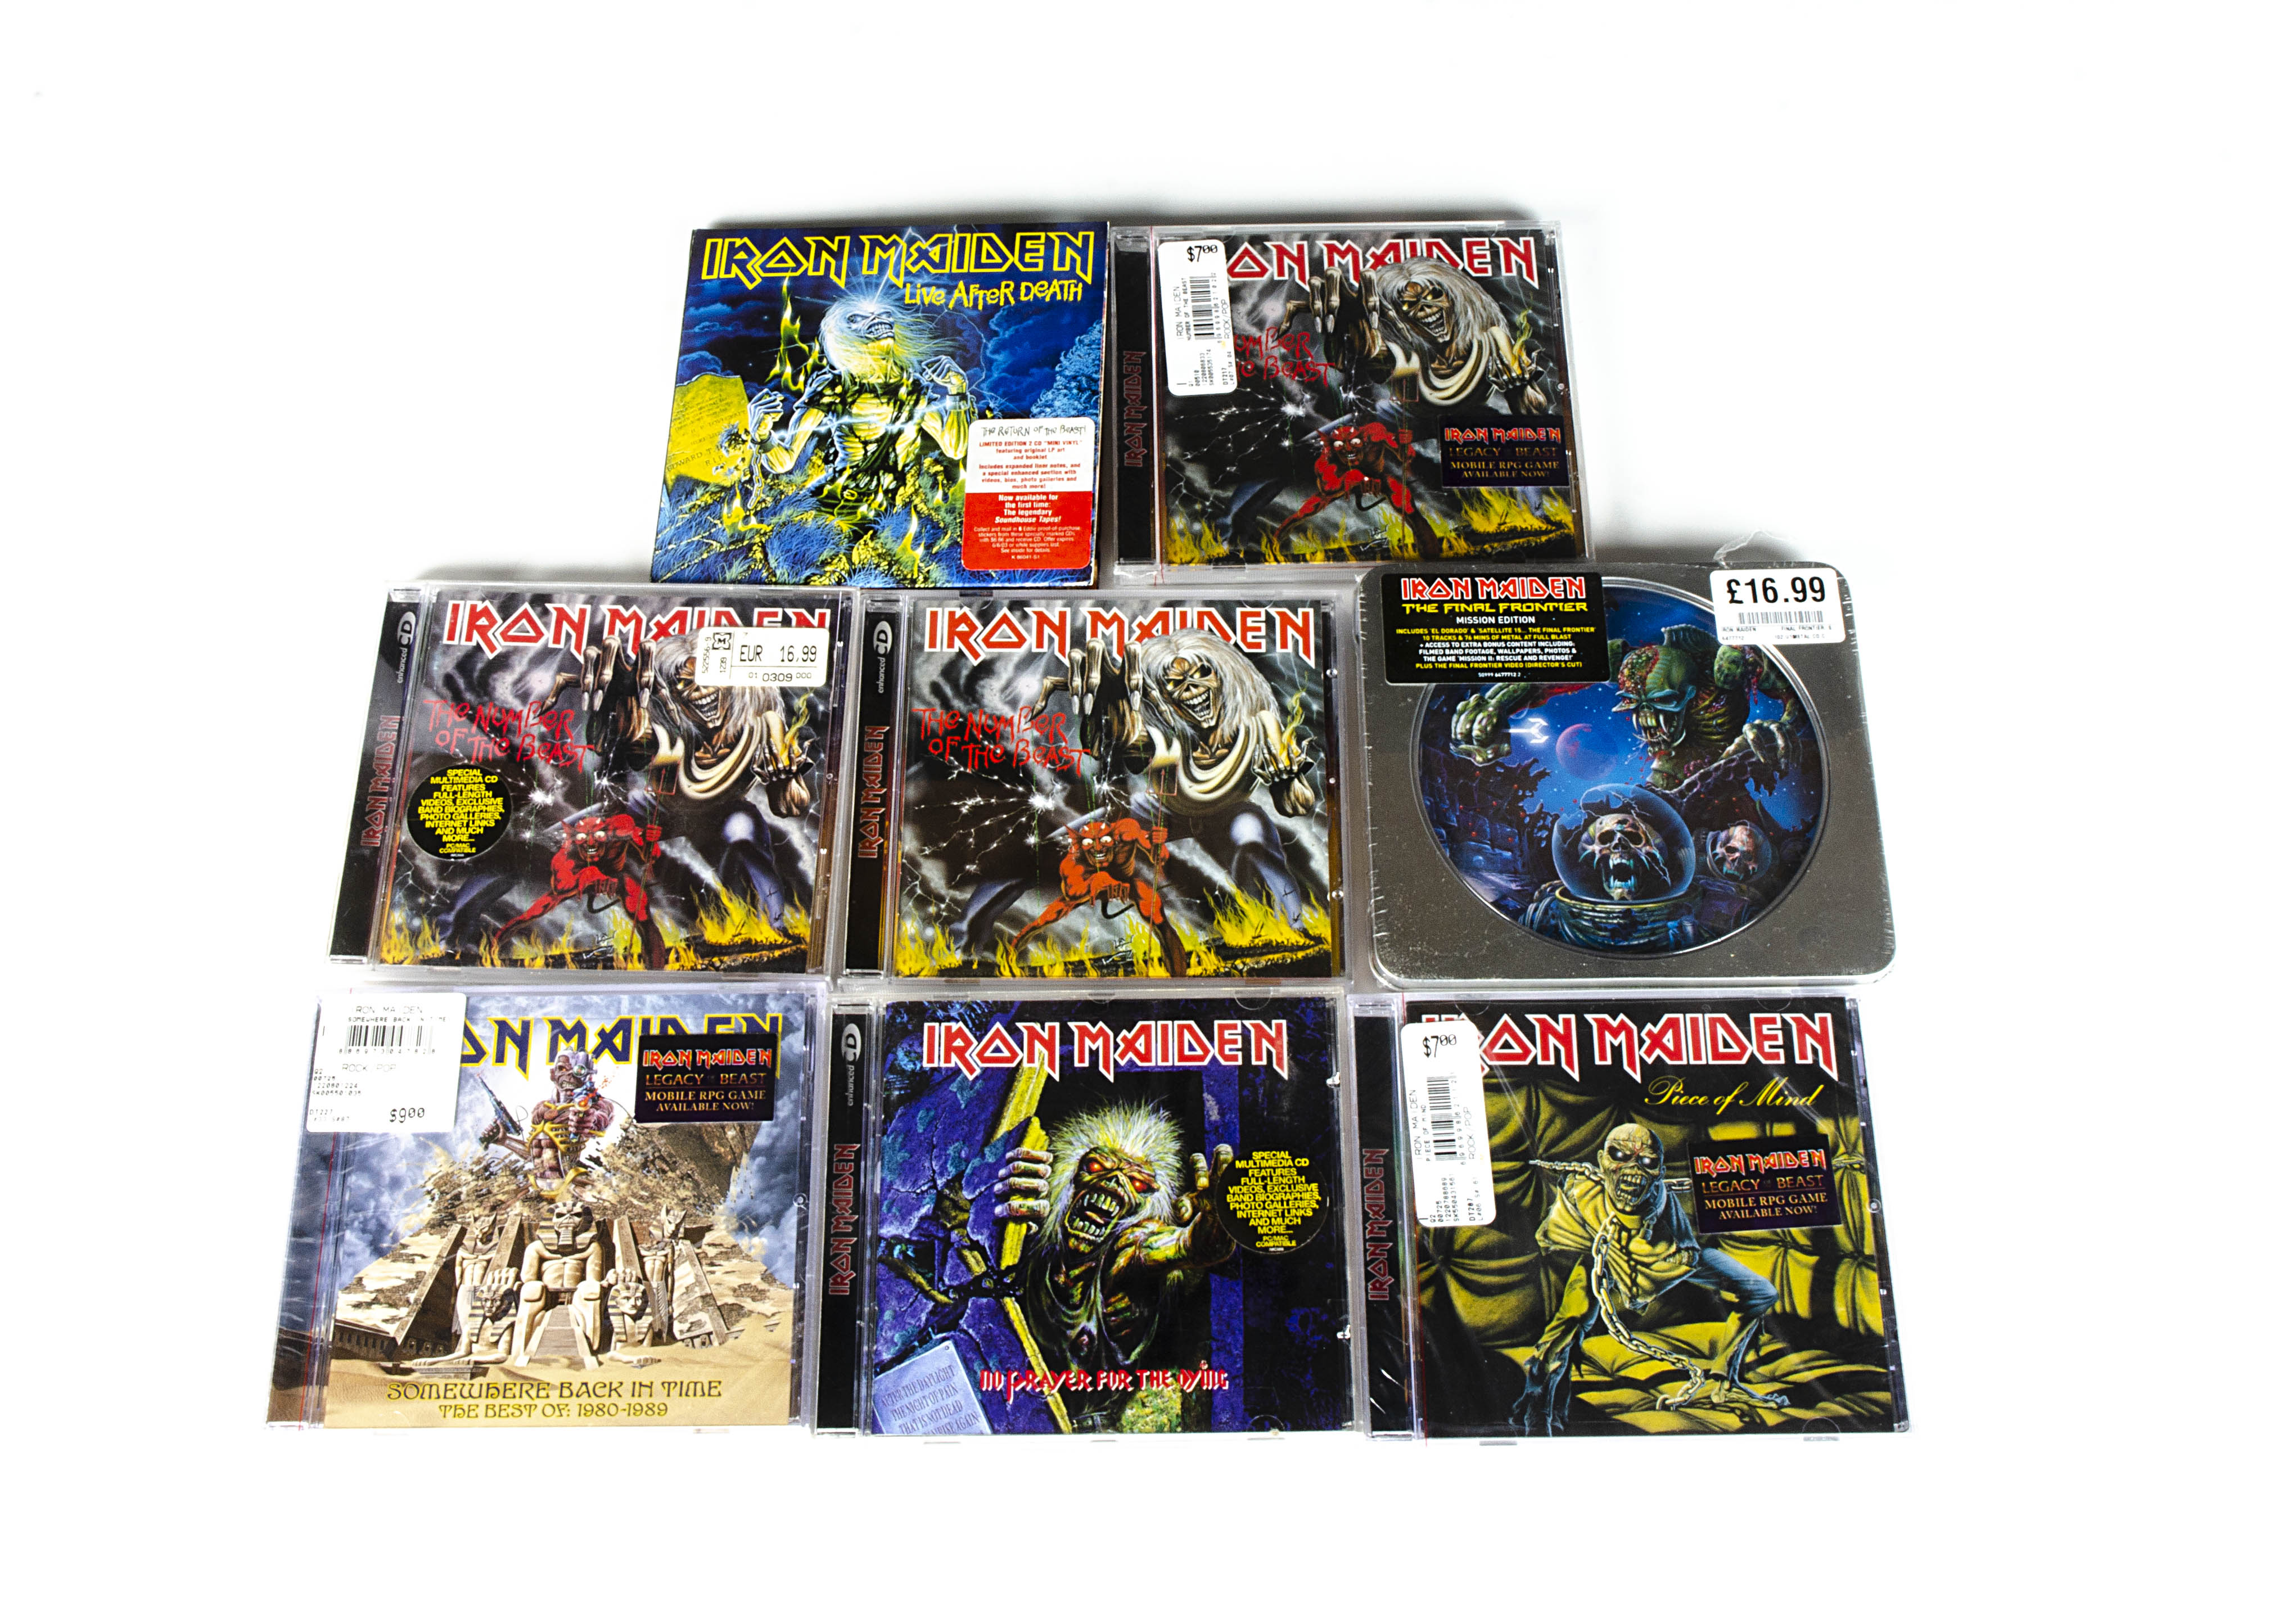 Iron Maiden CDs, eight Special Edition / Enhanced CDs comprising Number of the Beast (three